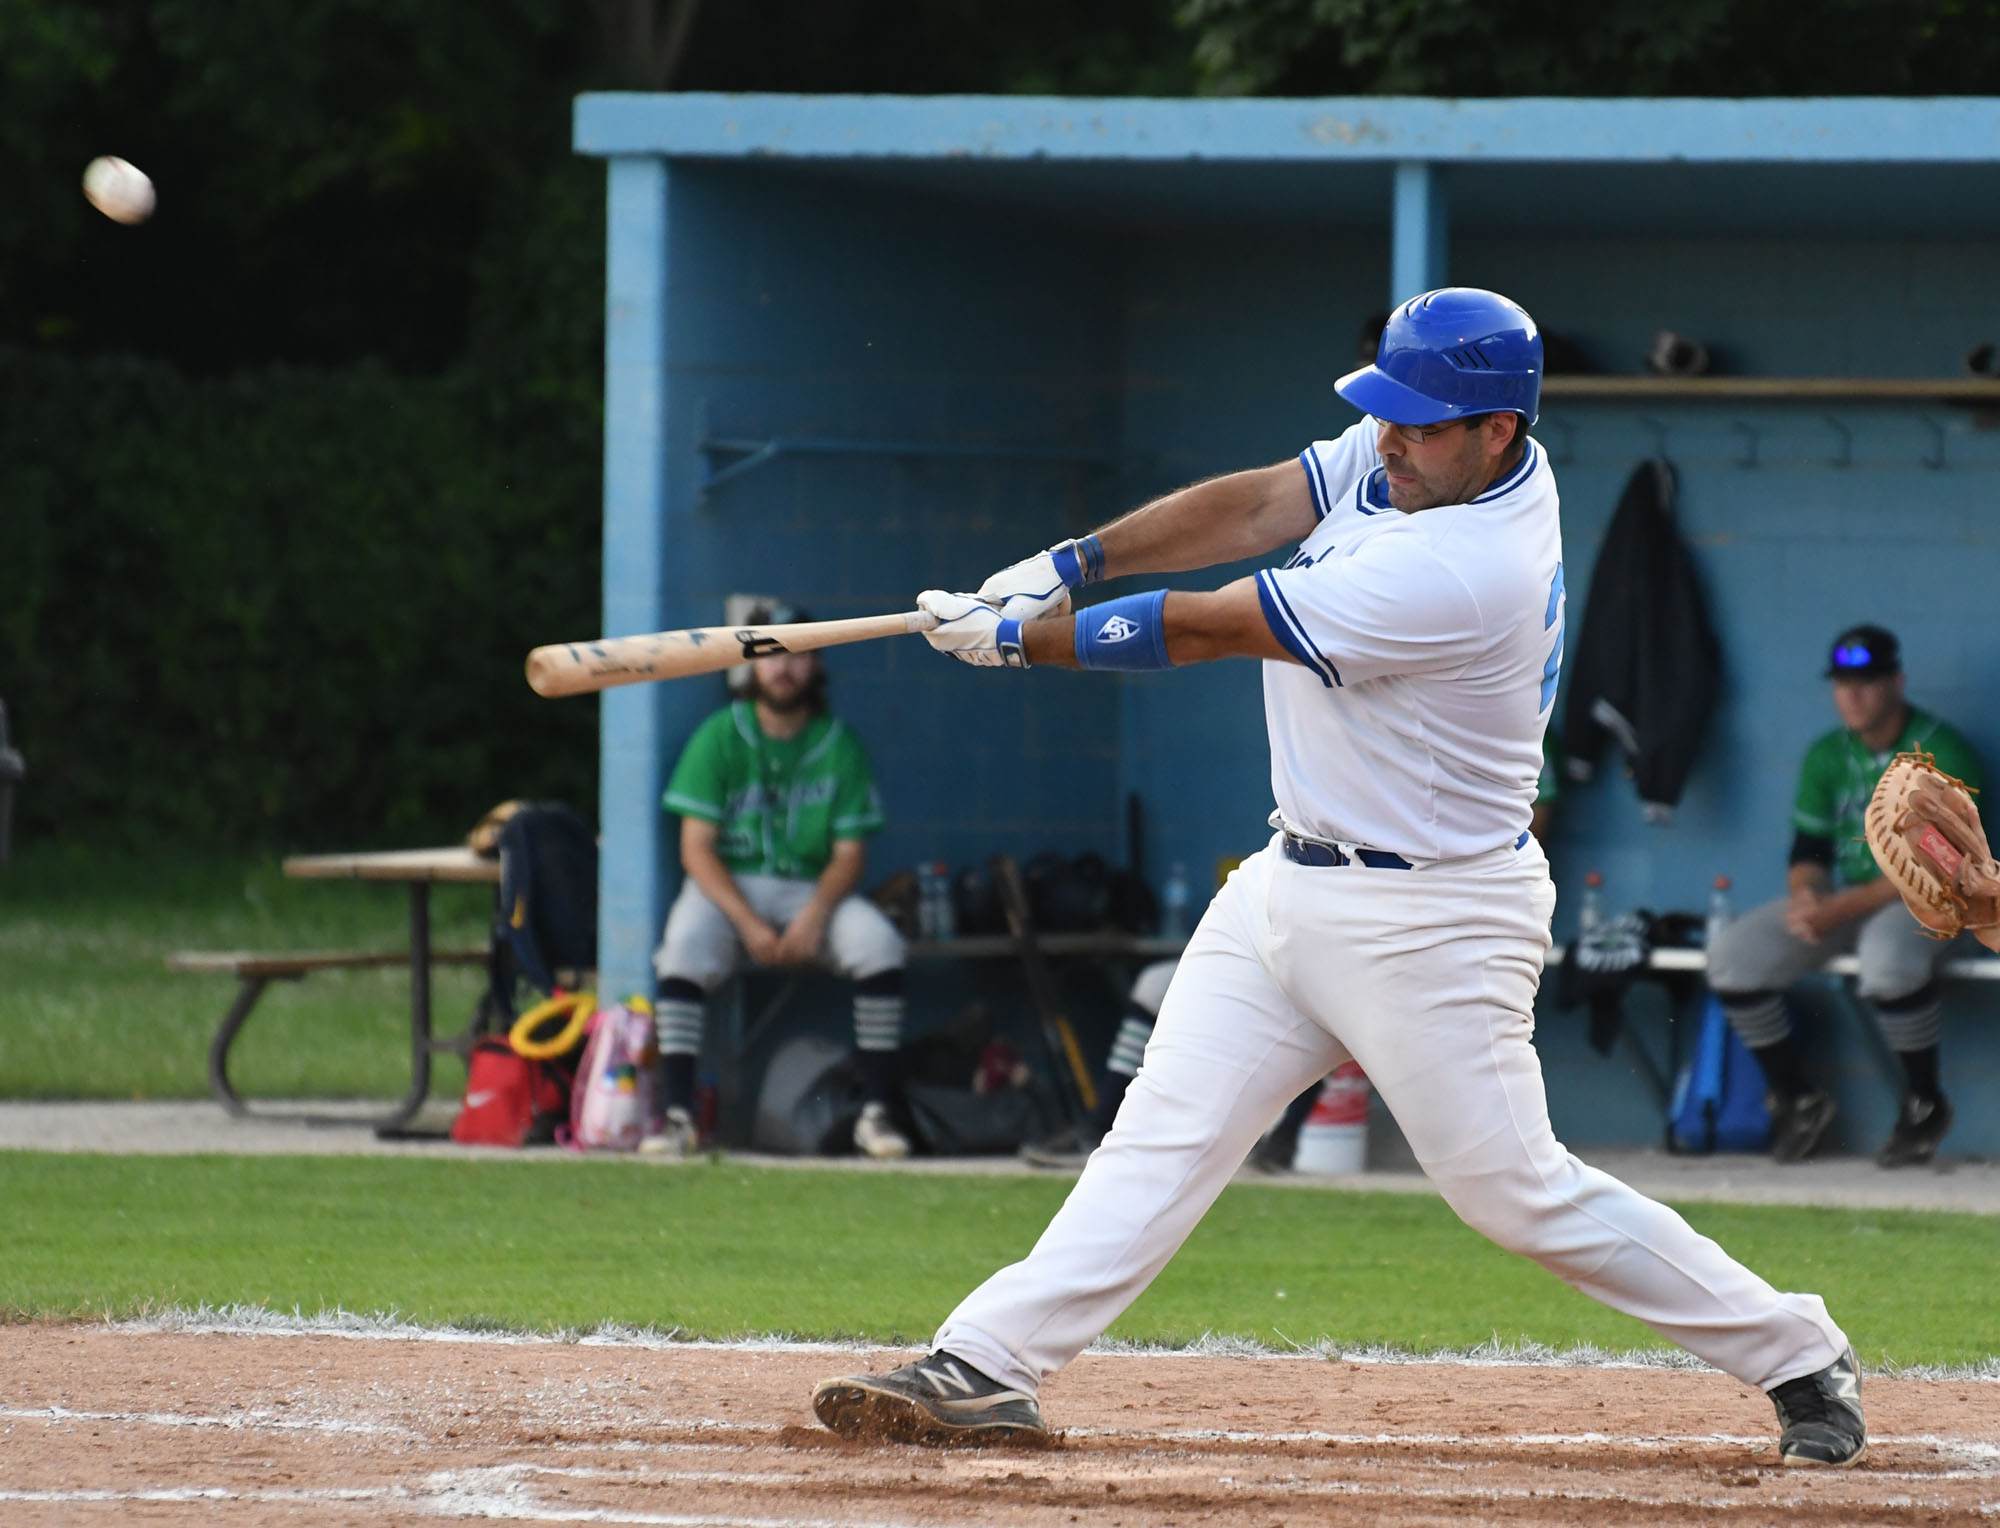 Photos: Guelph Royals-Welland IBL baseball